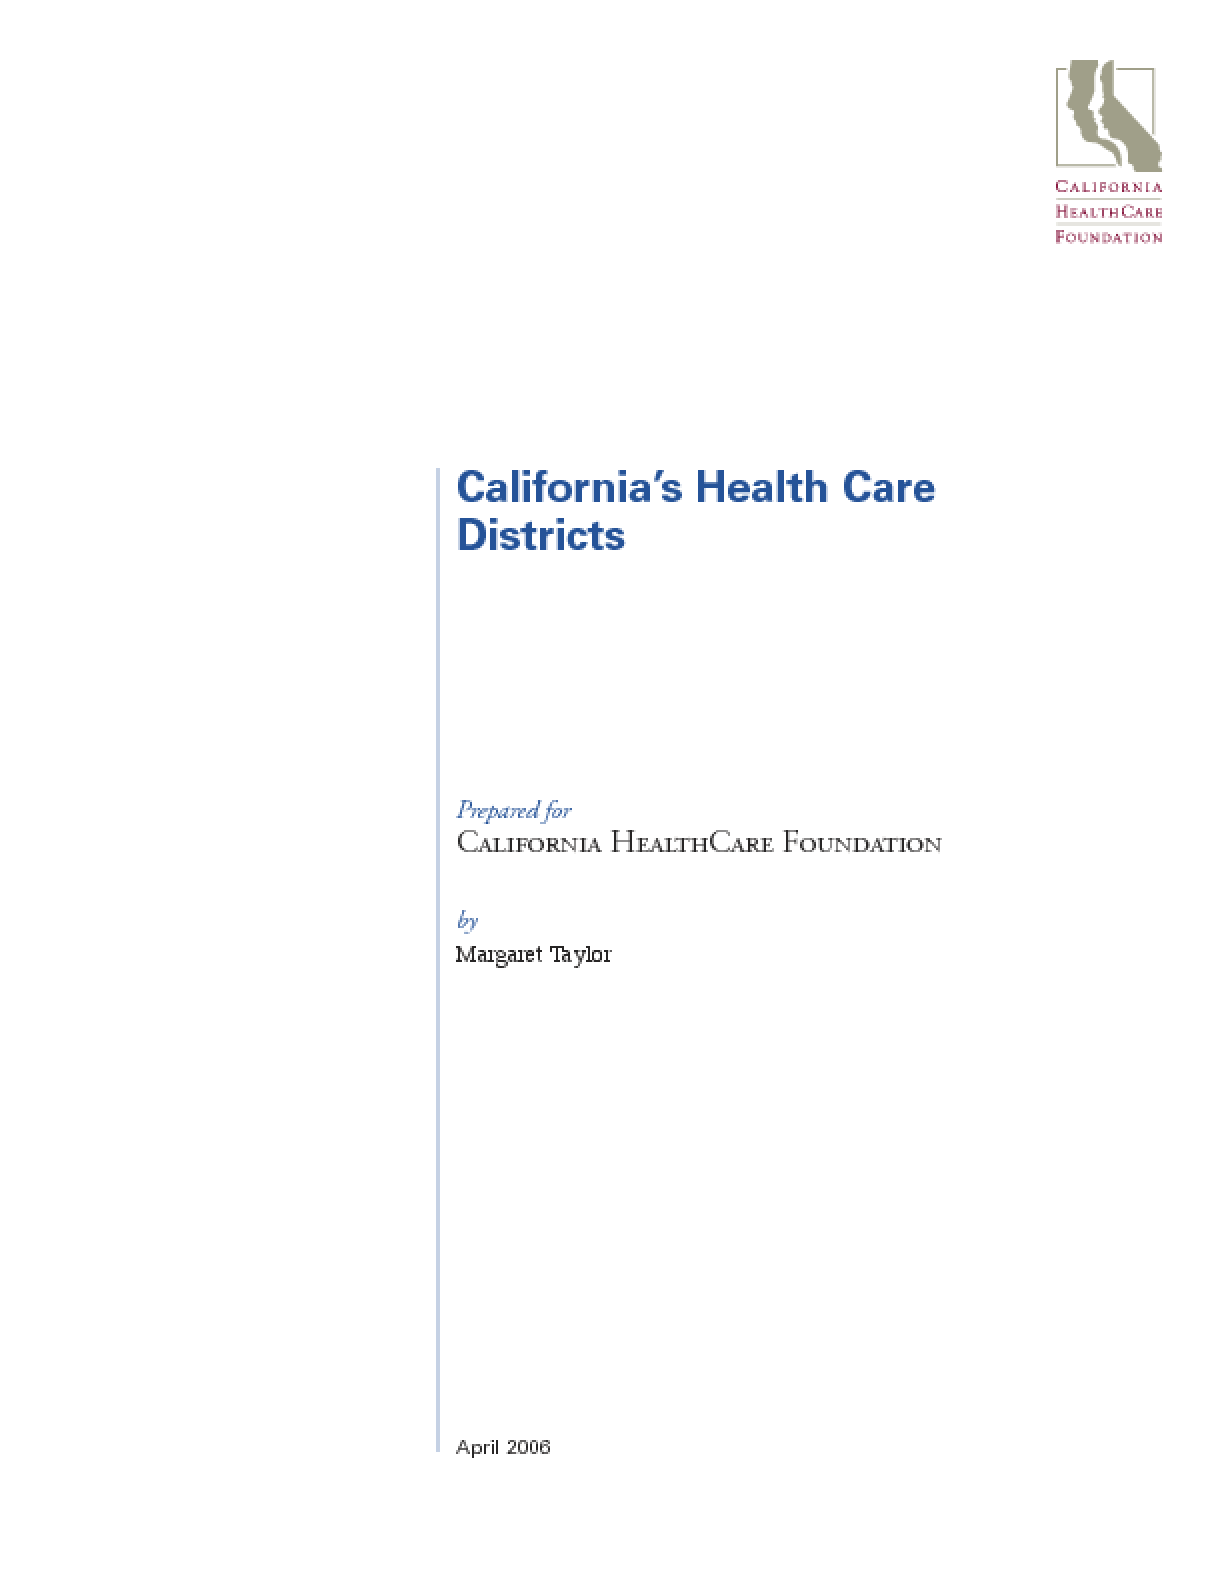 California's Health Care Districts